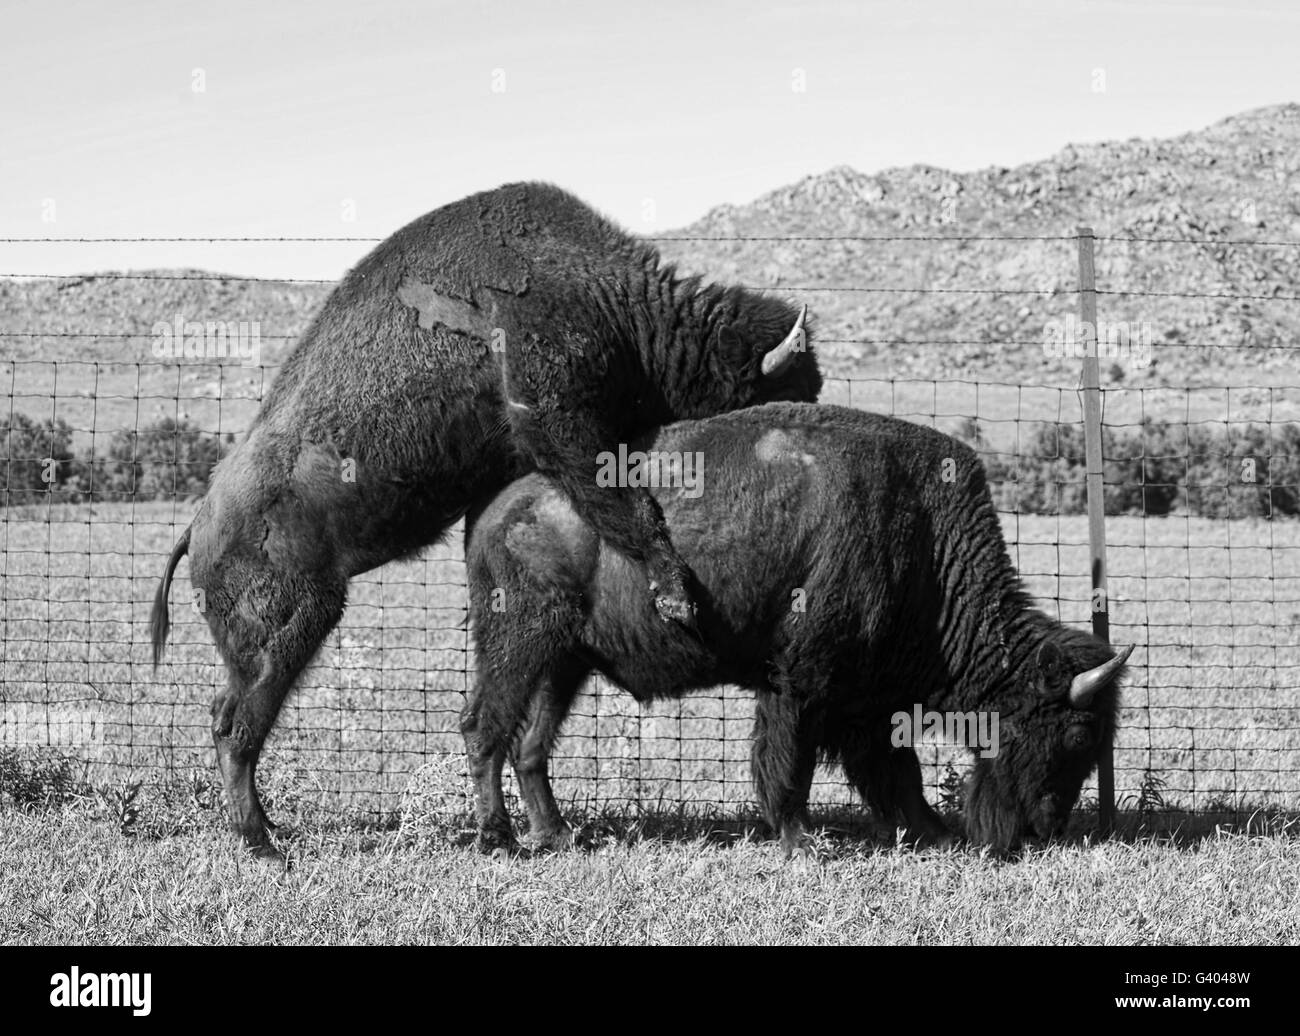 Buffalo's mating in the Oklahoma plains in springtime. Stock Photo